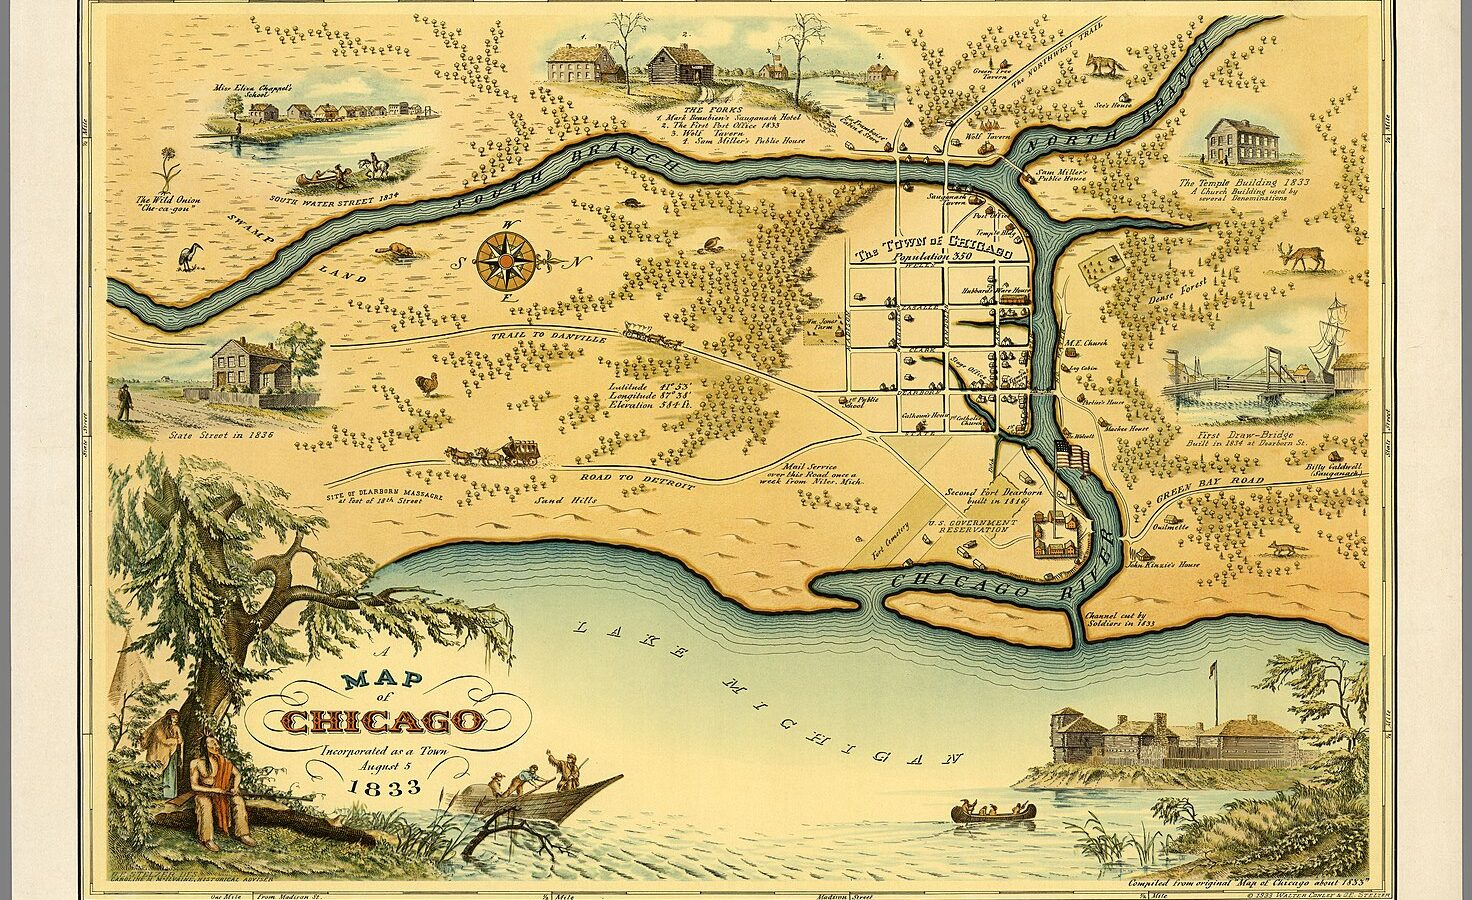 1833 Map of Chicago